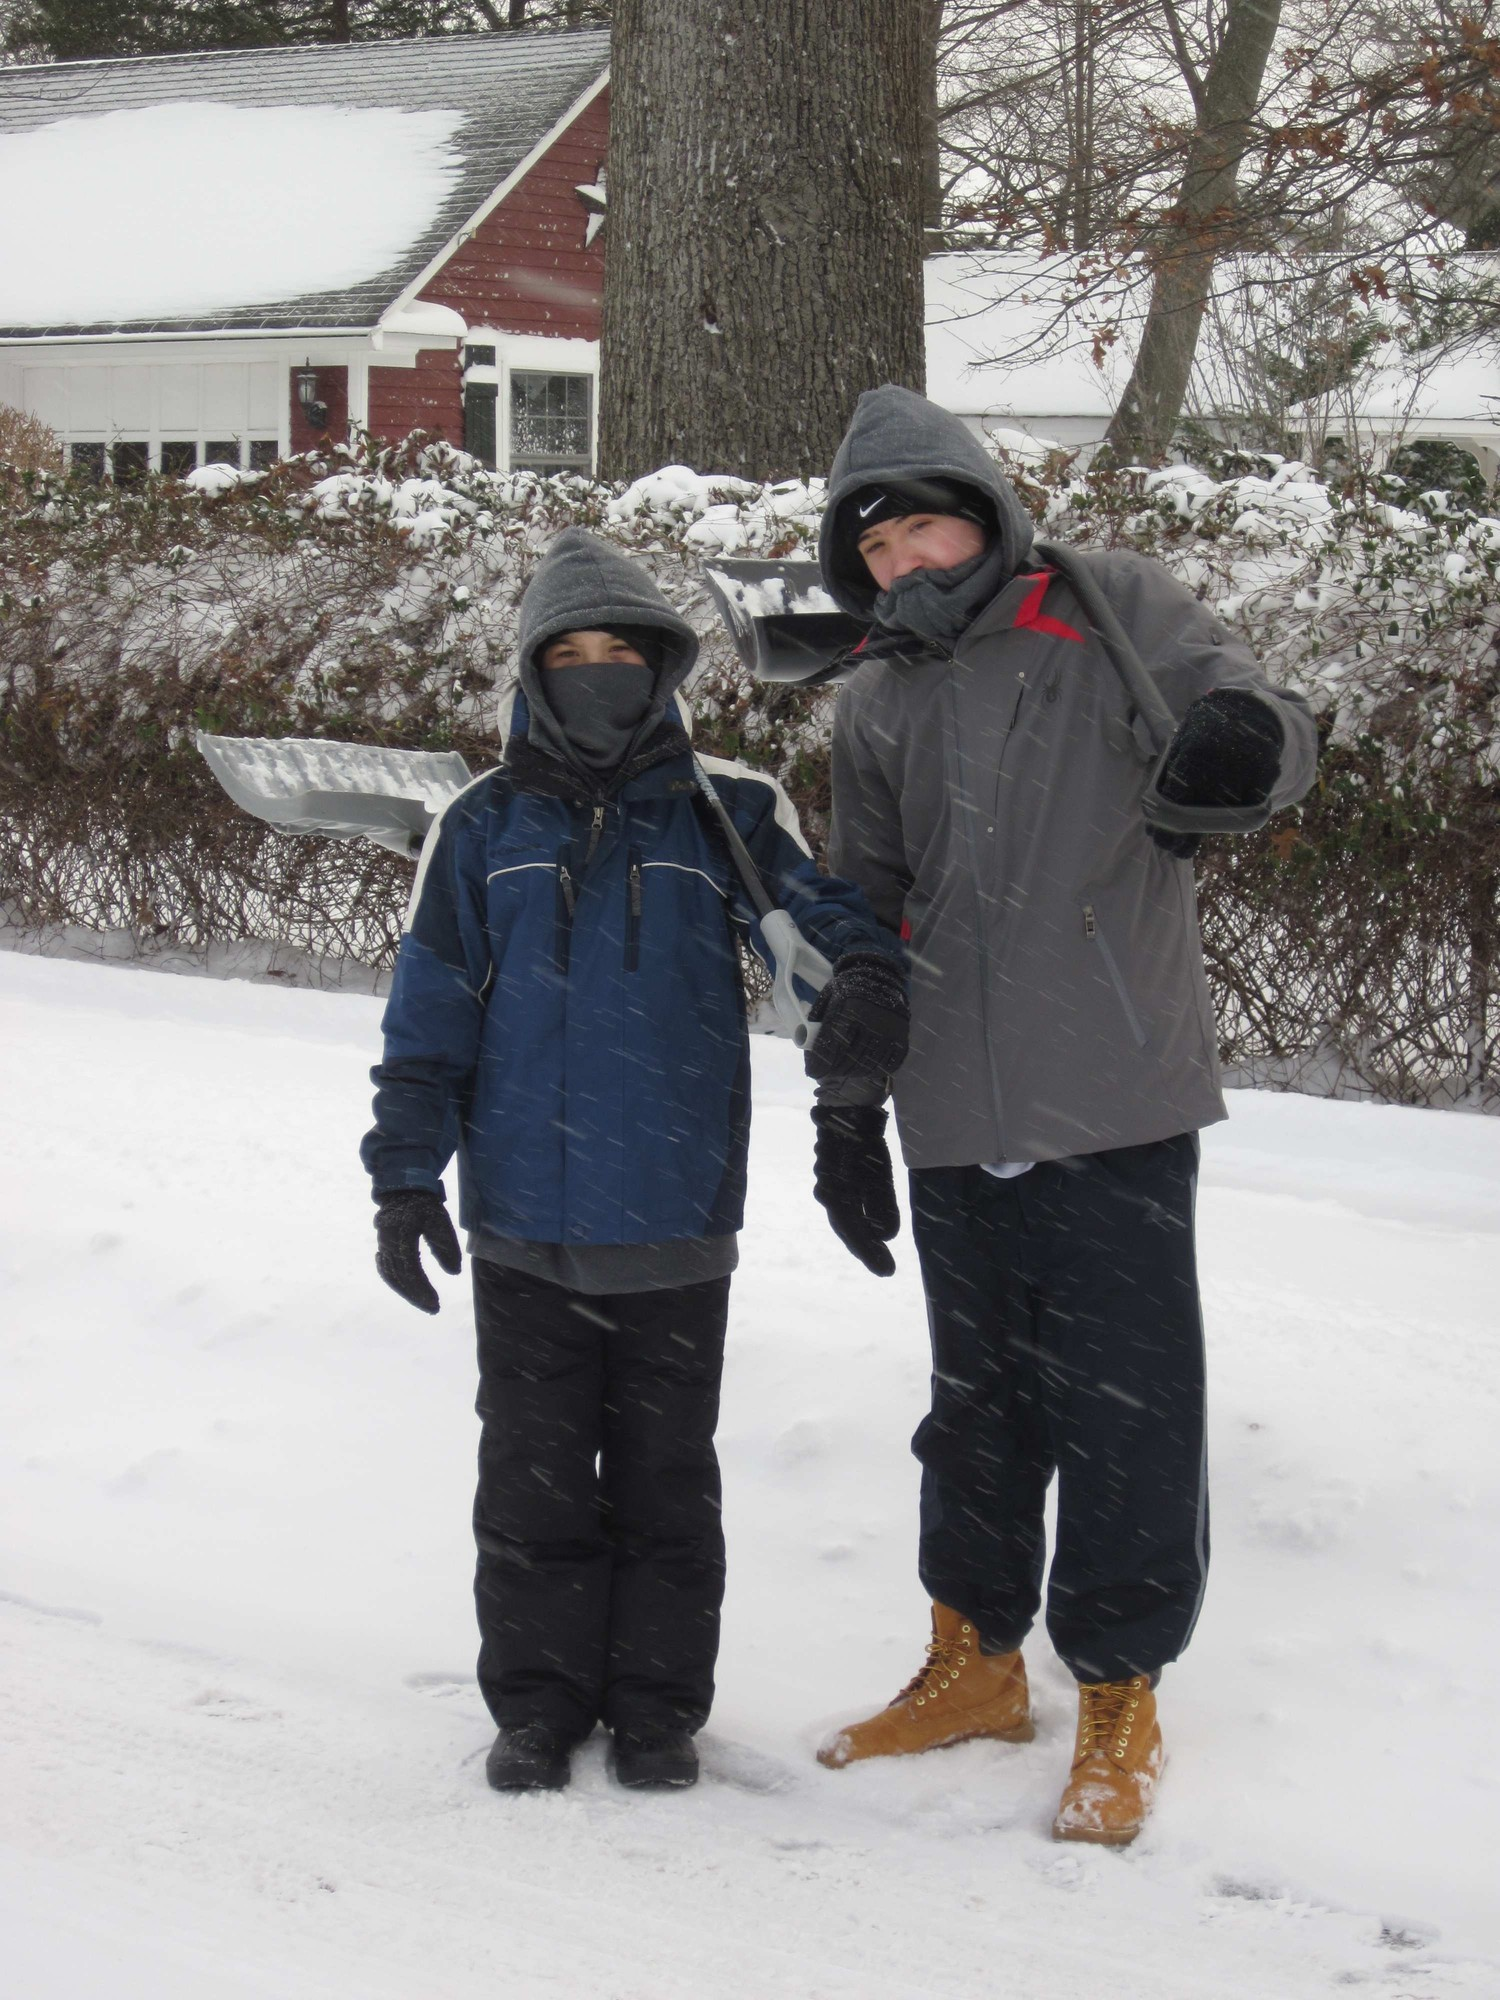 Brothers Trent, left, and Tyler Davis were starting their day by offering their help shoveling to neighbors.